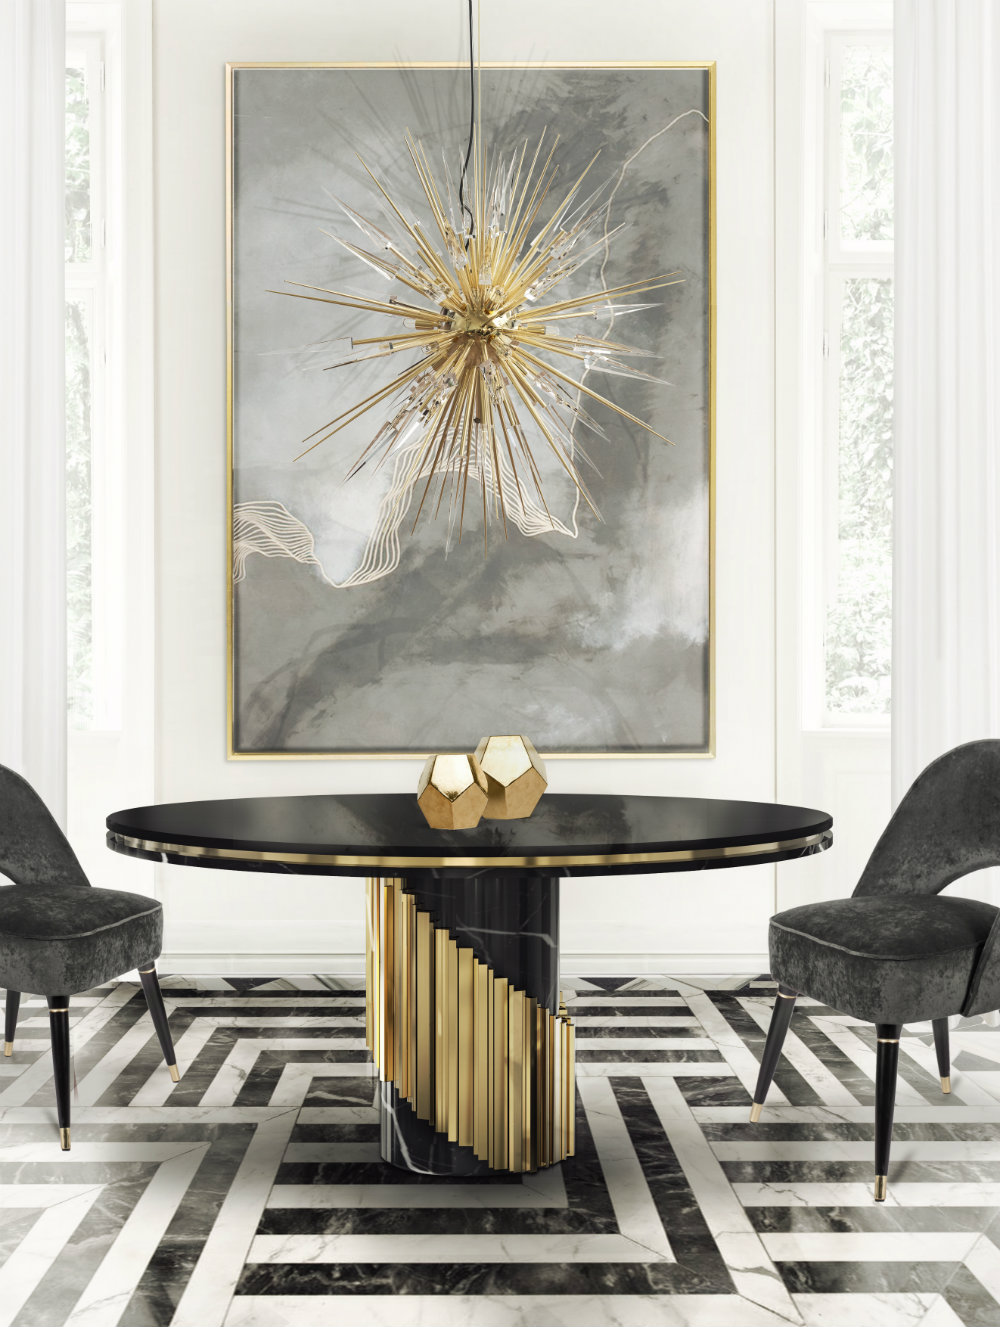 3 Luxury Home Decor Ideas design showrooms in new york The Best Design Showrooms in New York 3 Luxury Home D  cor Ideas design showrooms in new york The Best Design Showrooms in New York 3 Luxury Home D C3 A9cor Ideas